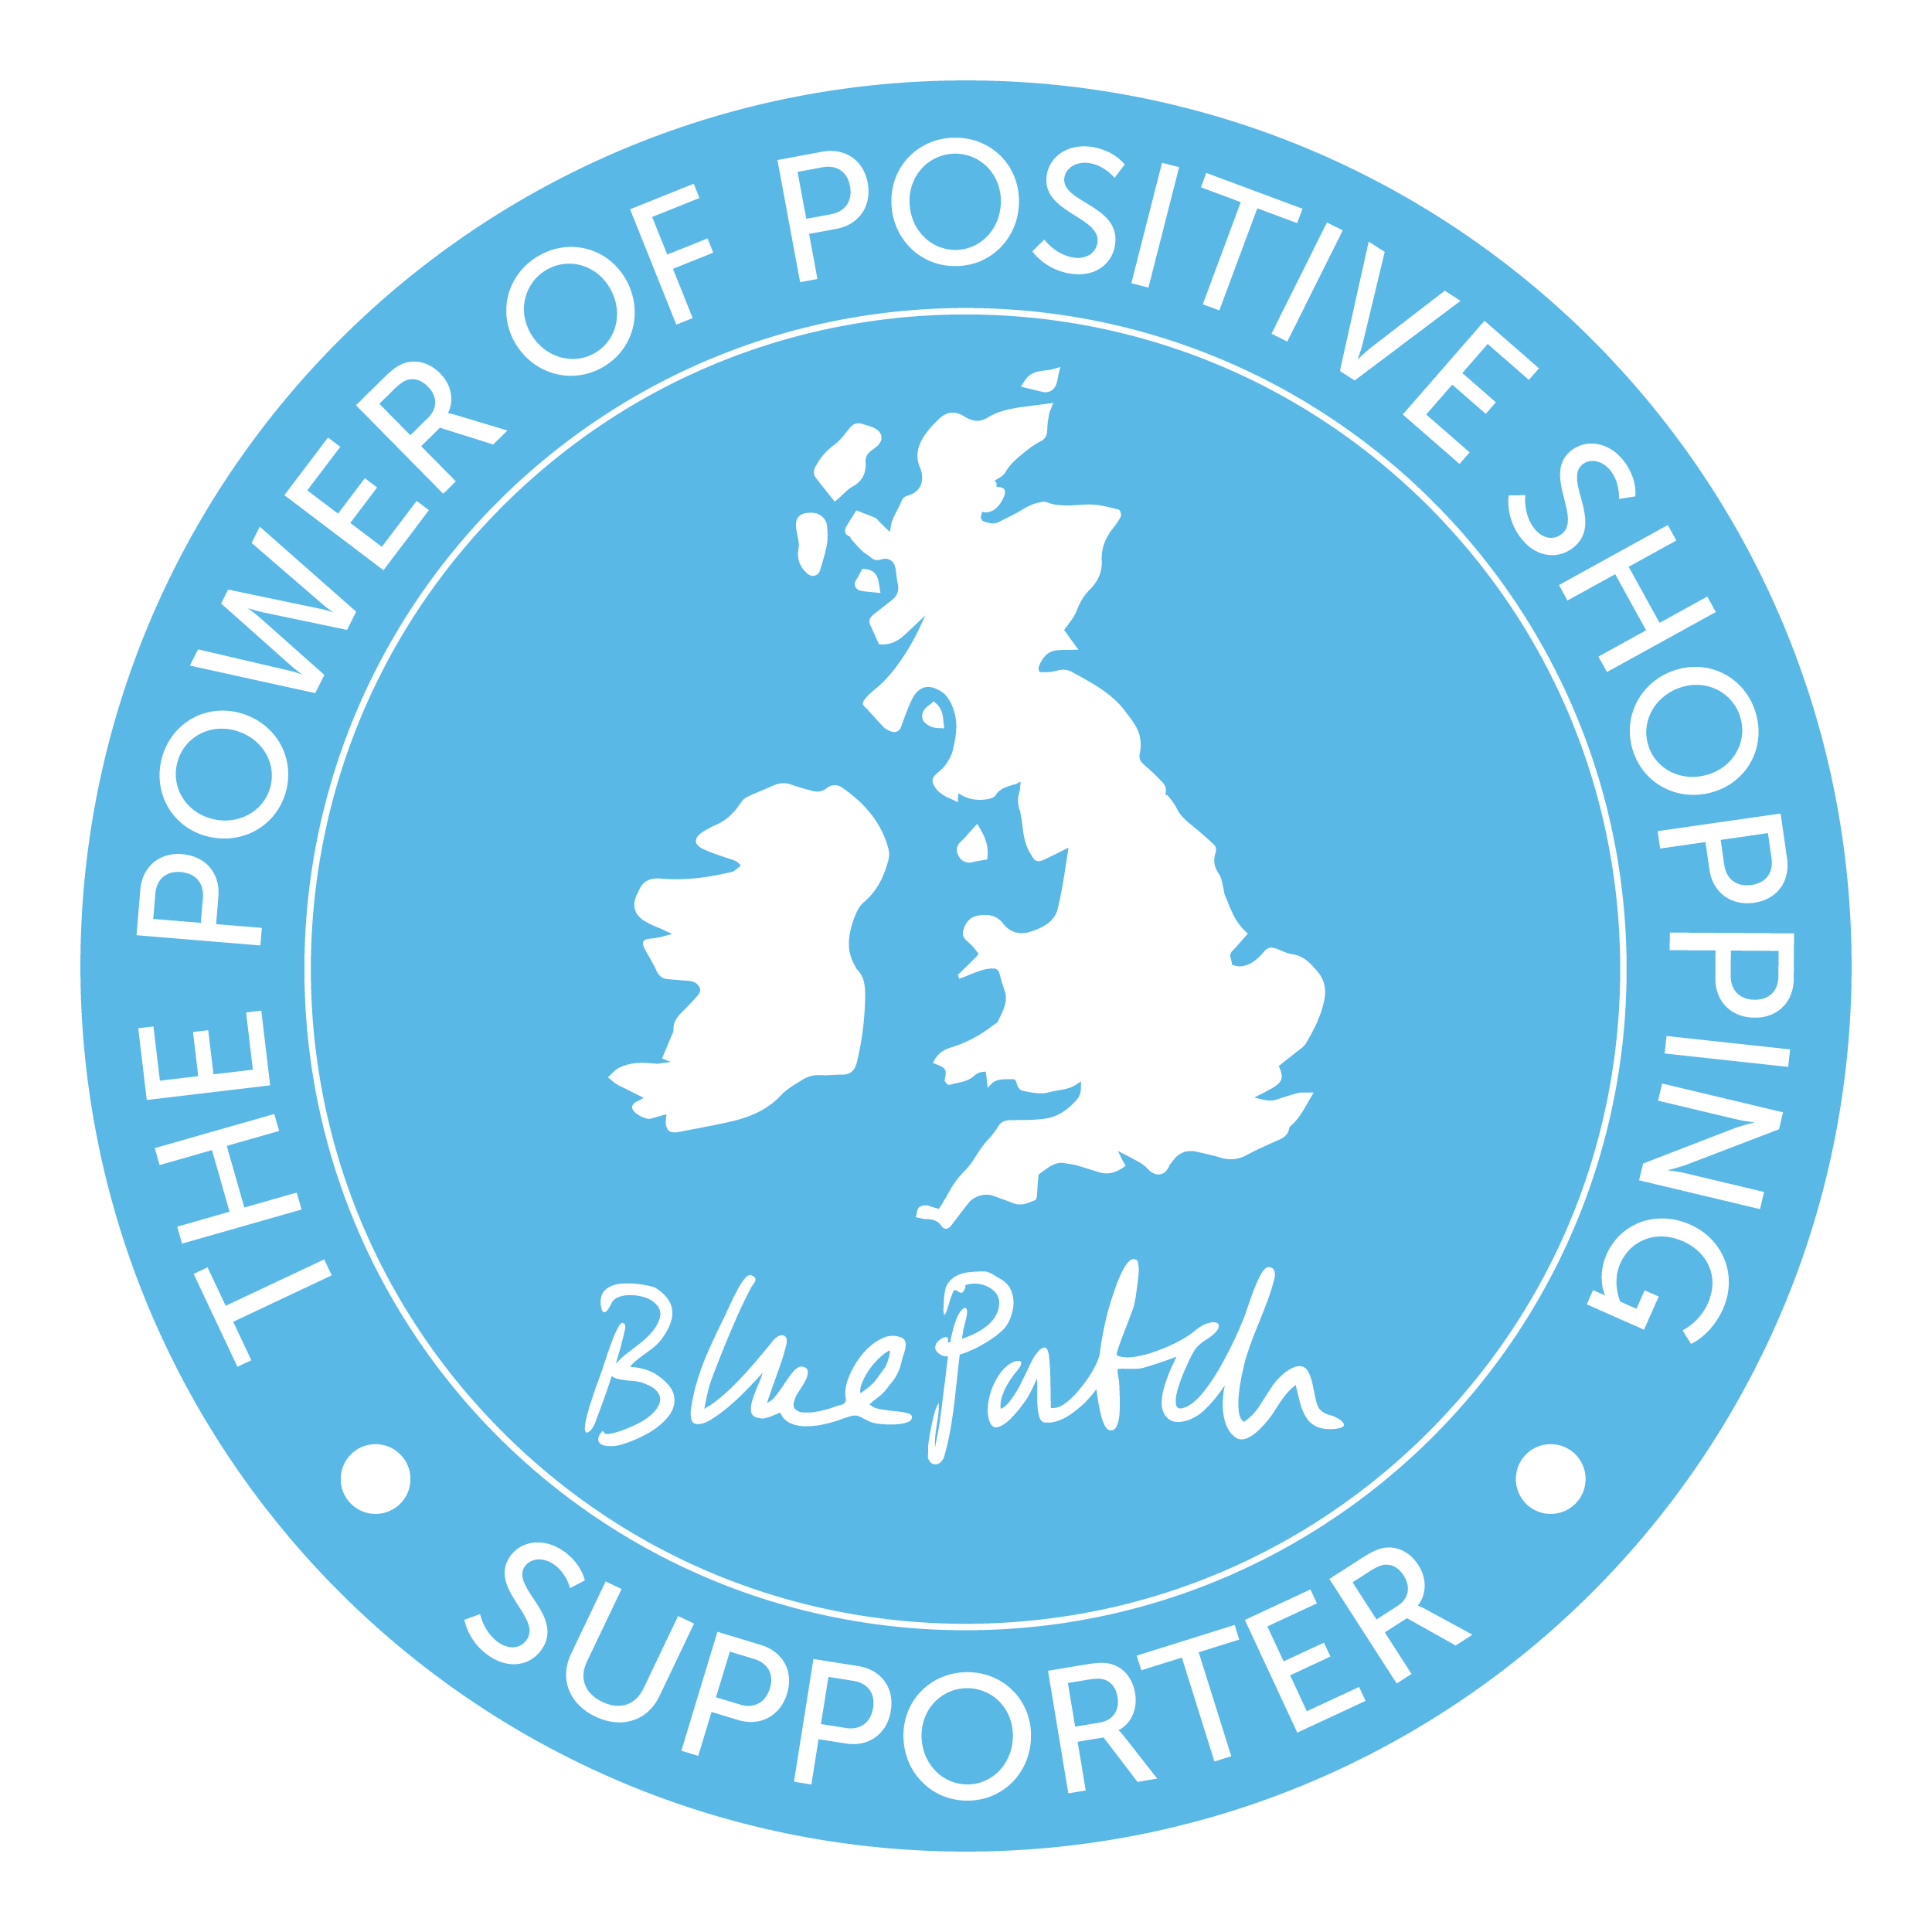 The Power of Positive shopping,bluepatch